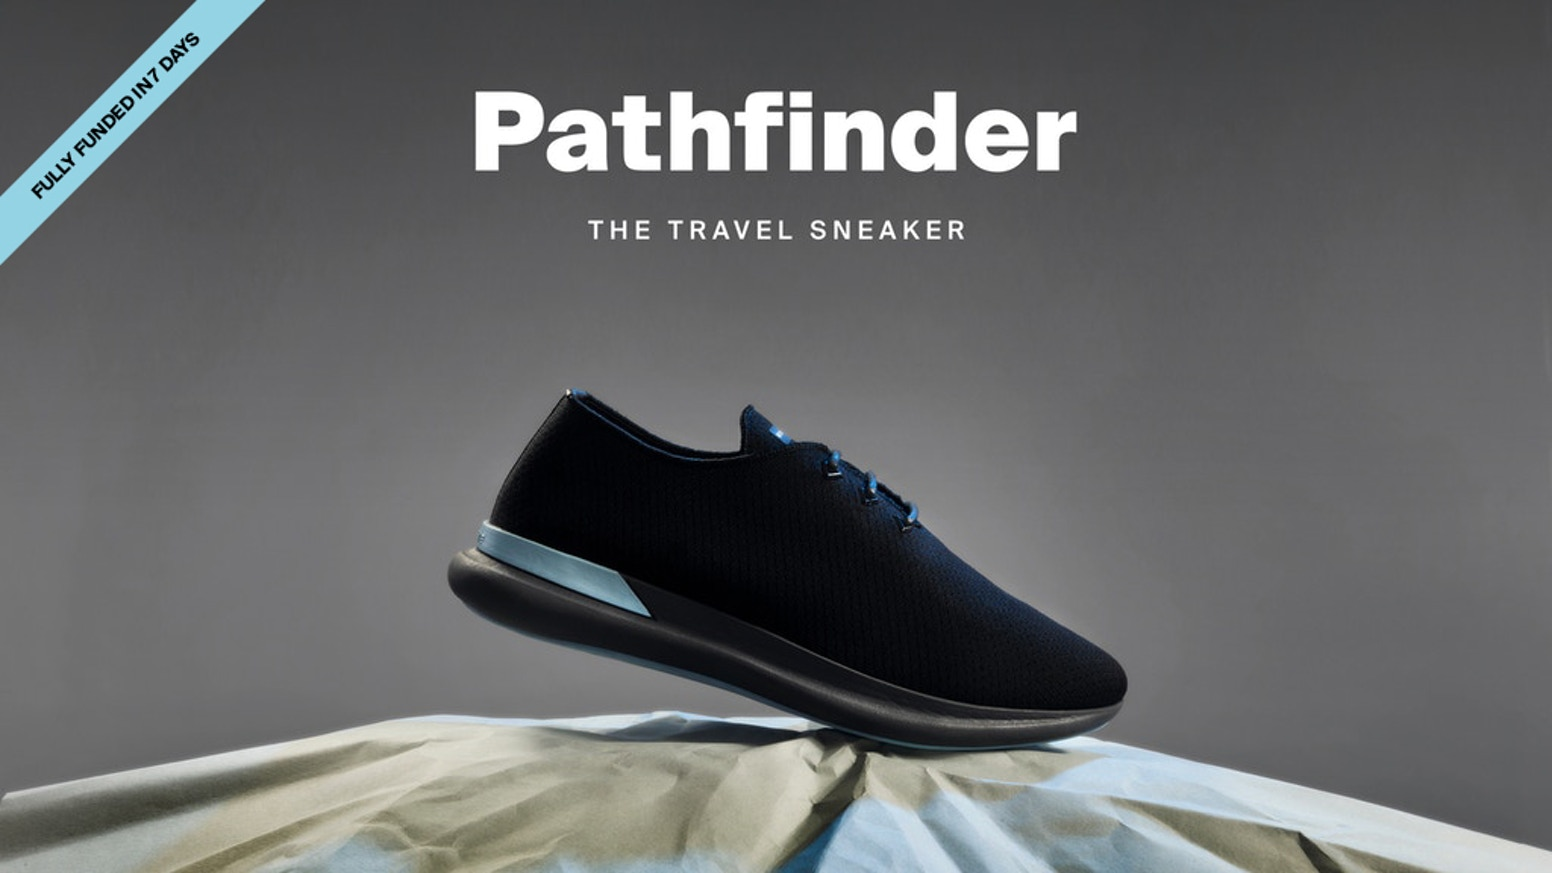 The latest technology in footwear is finally here, combining the best features of a sneaker but with a unique and minimalistic touch.